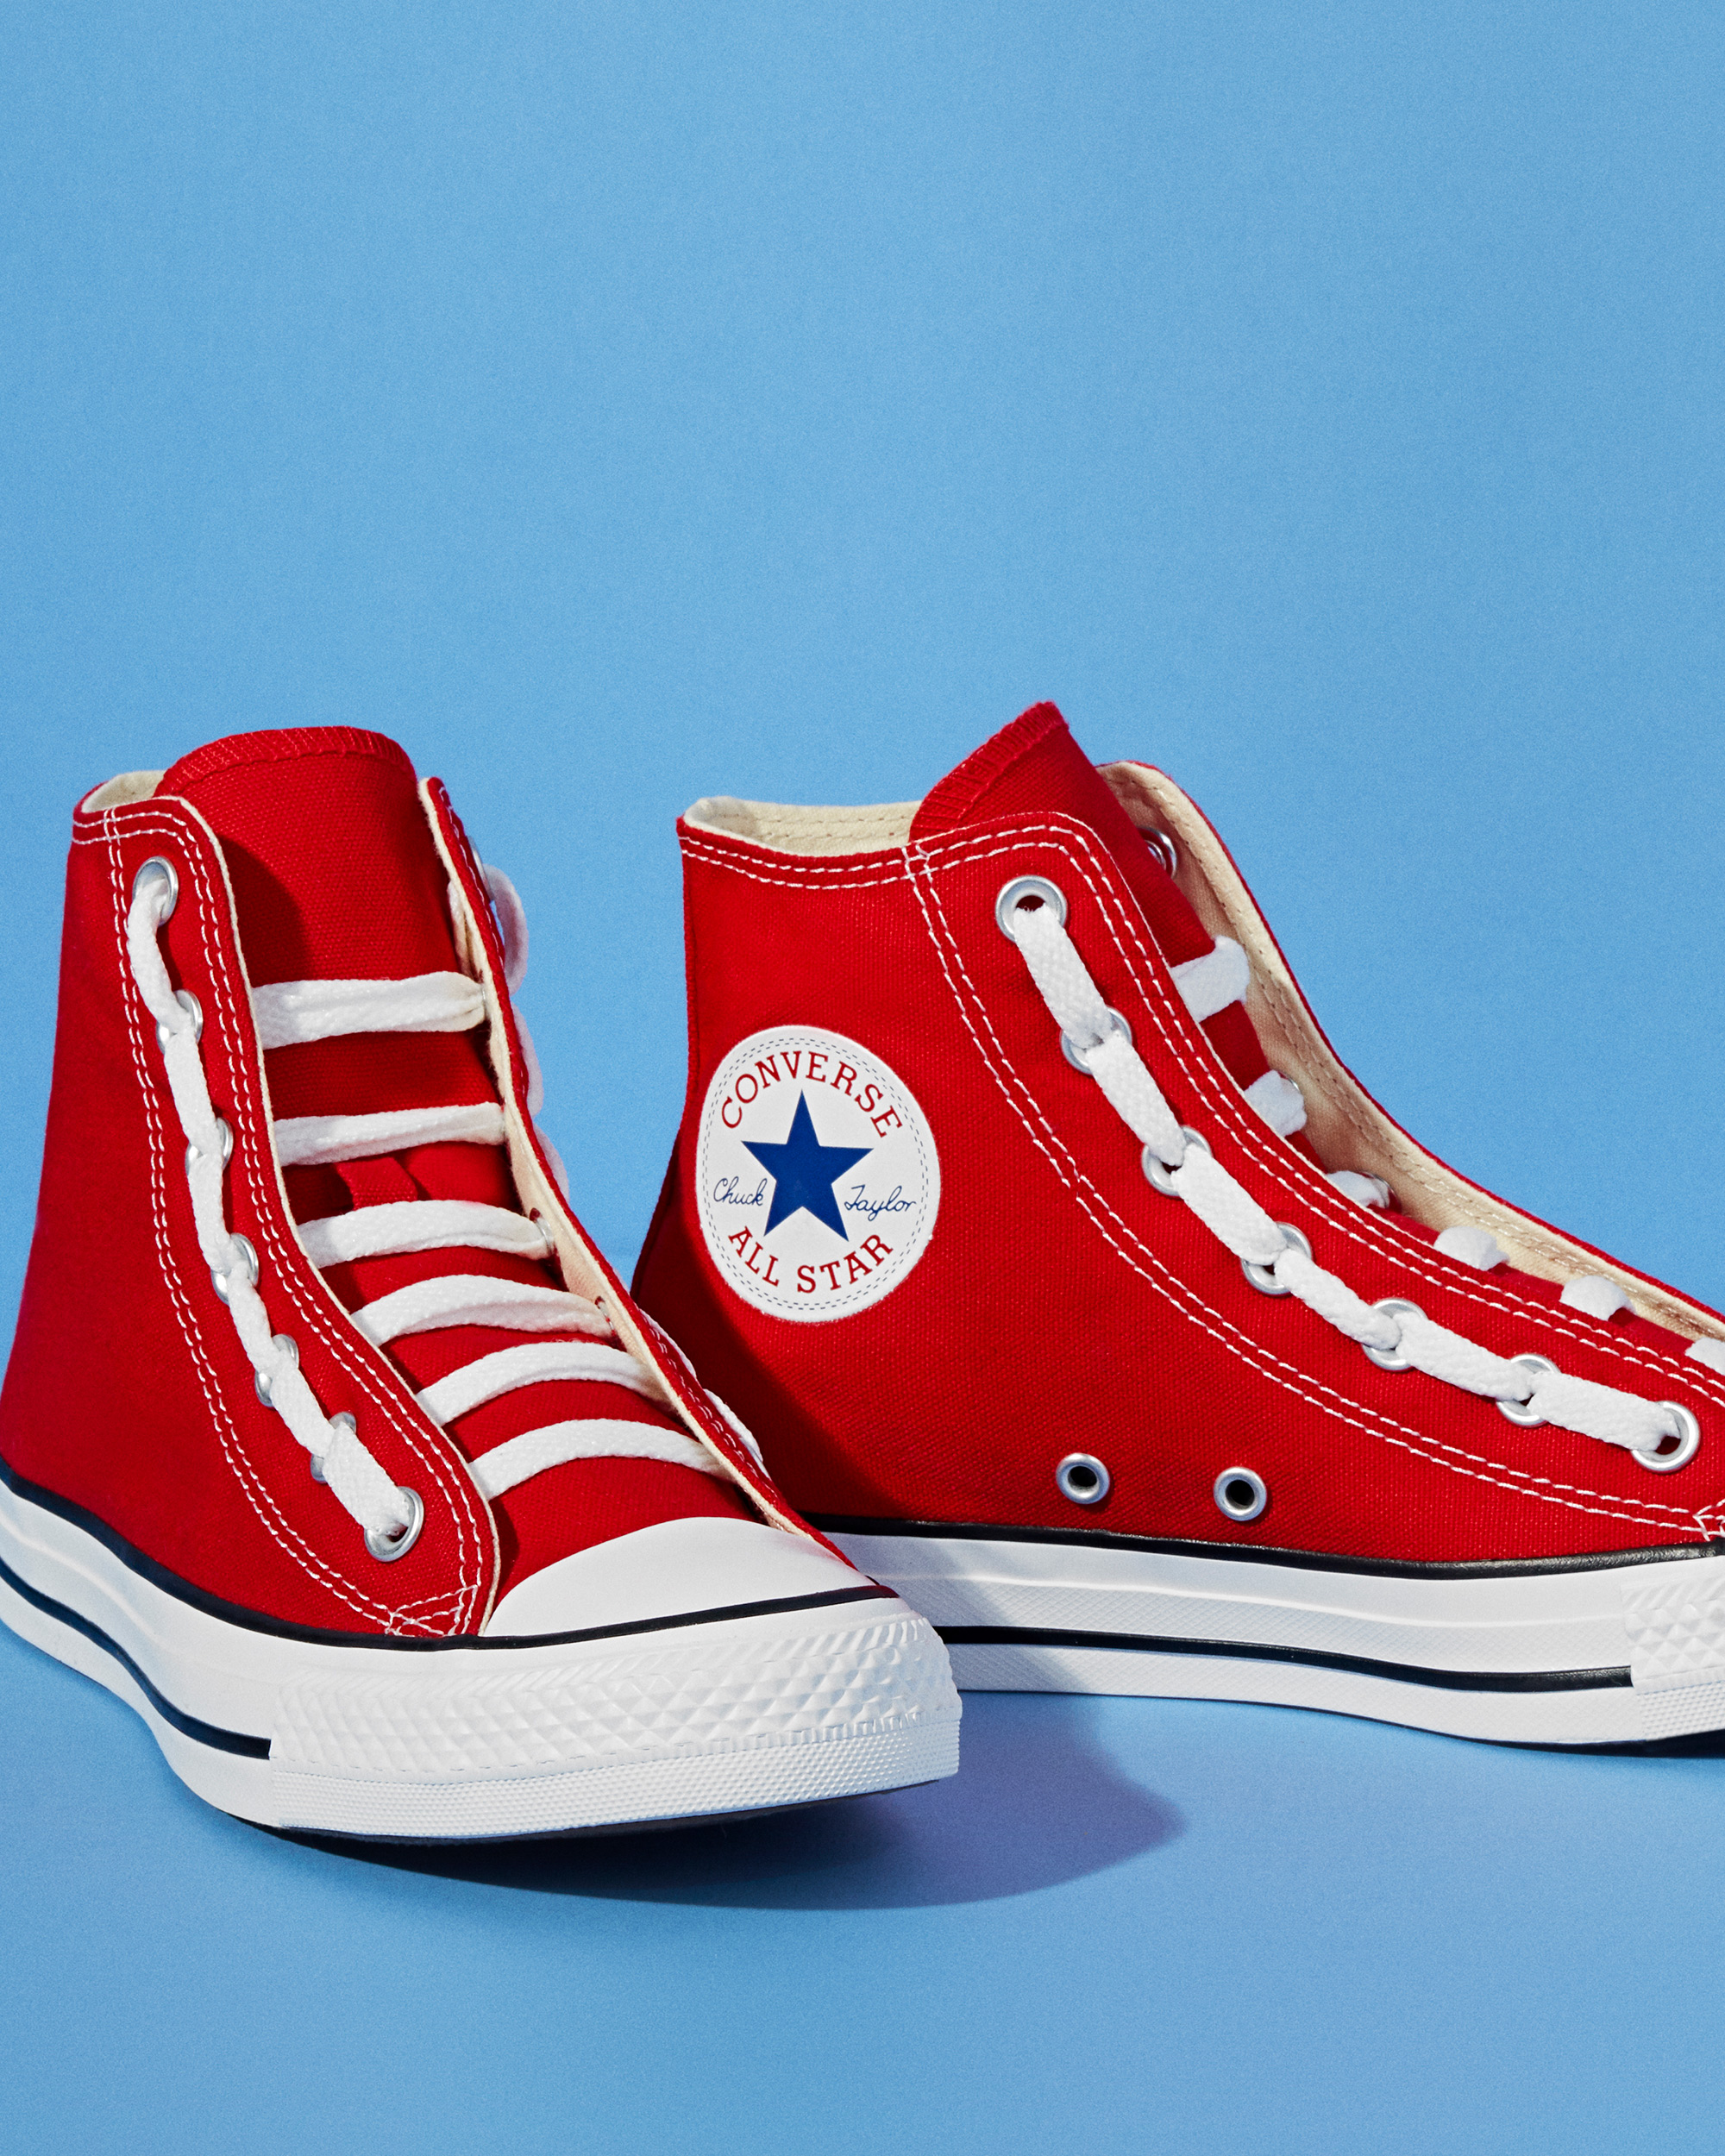 5_August_01_Converse_LacingSeries_0047